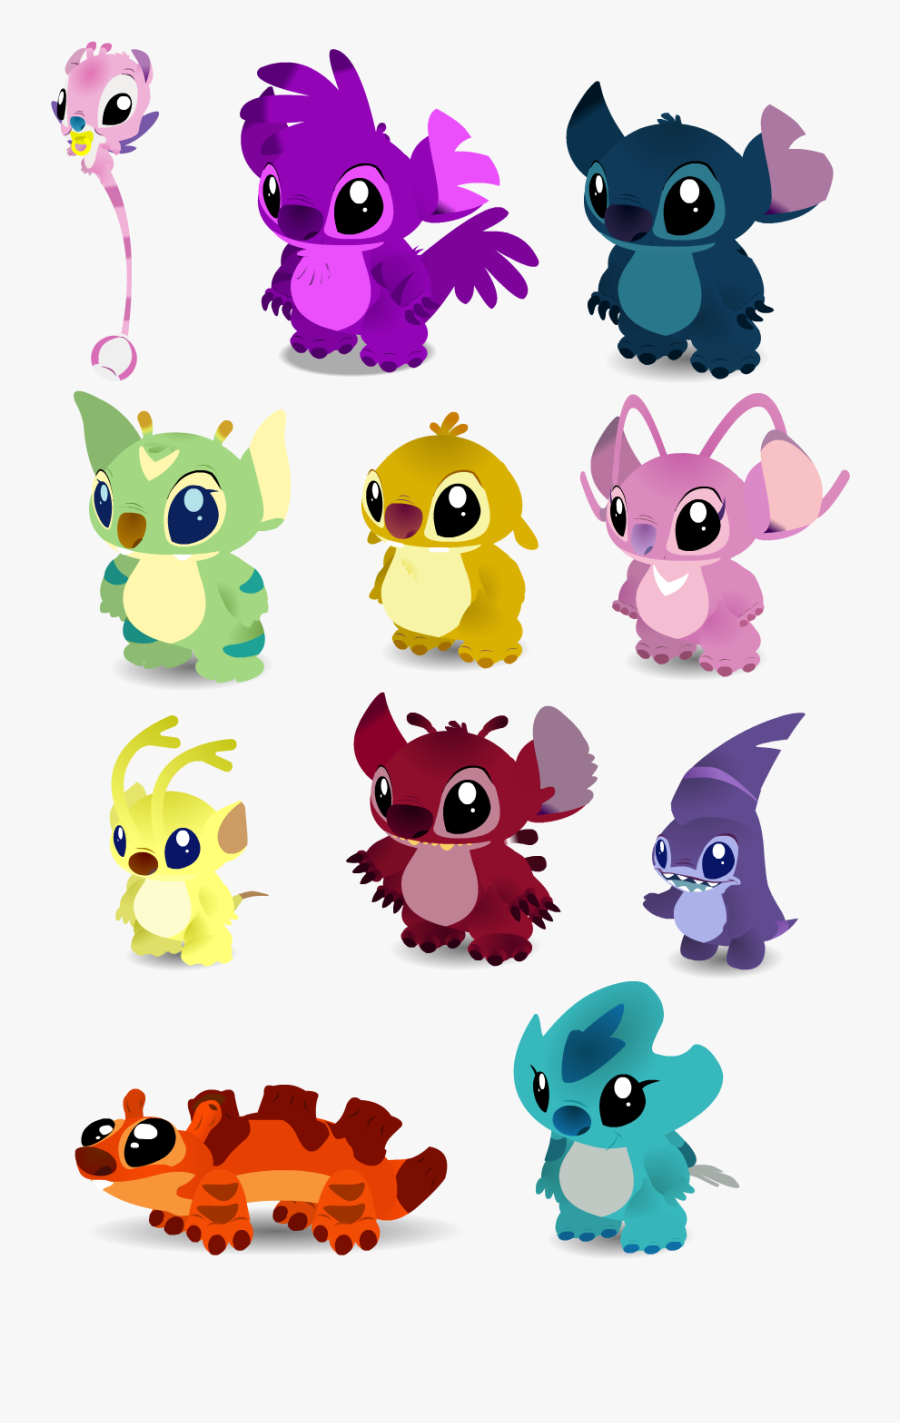 Transparent Lilo And Stitch Clipart - All The Stitches From Lilo And Stitch, Transparent Clipart